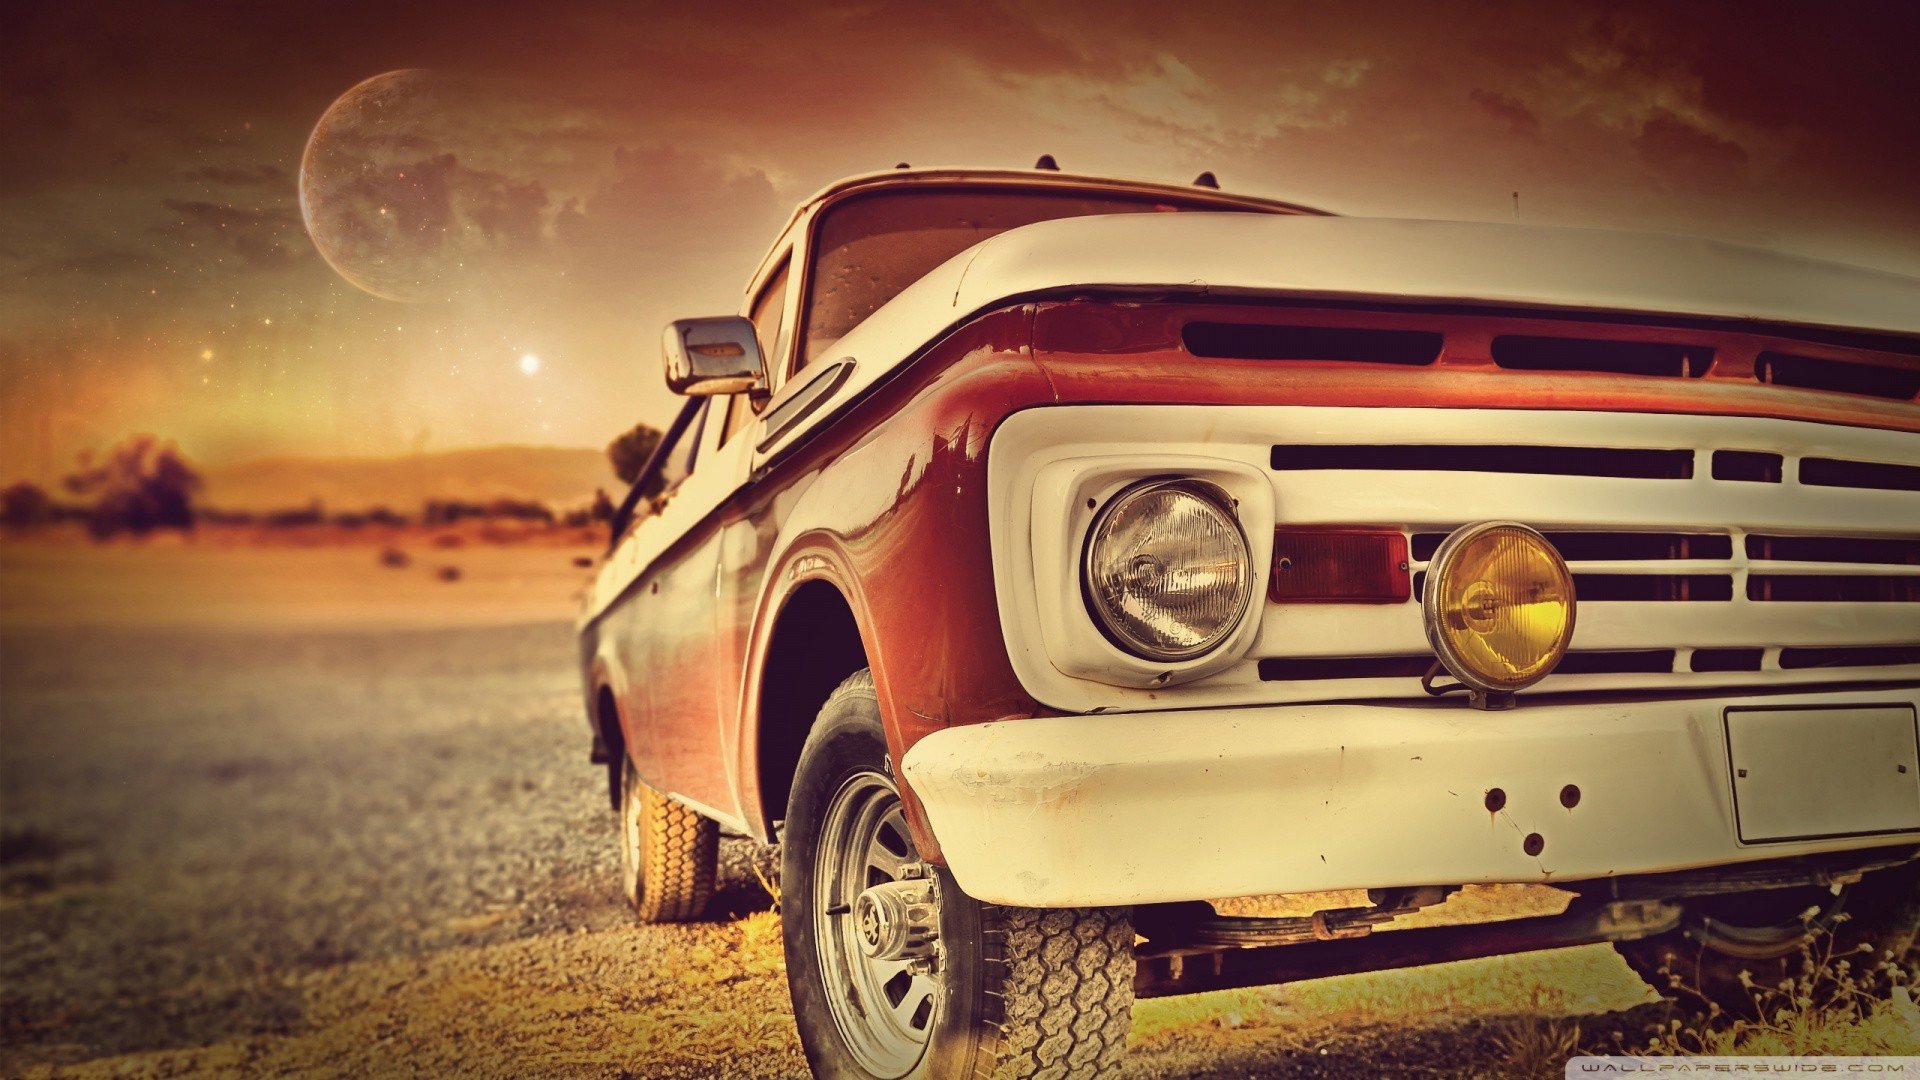 0 Yellow Car Background #6864393 car, classic cars, background, auto  wallpaper